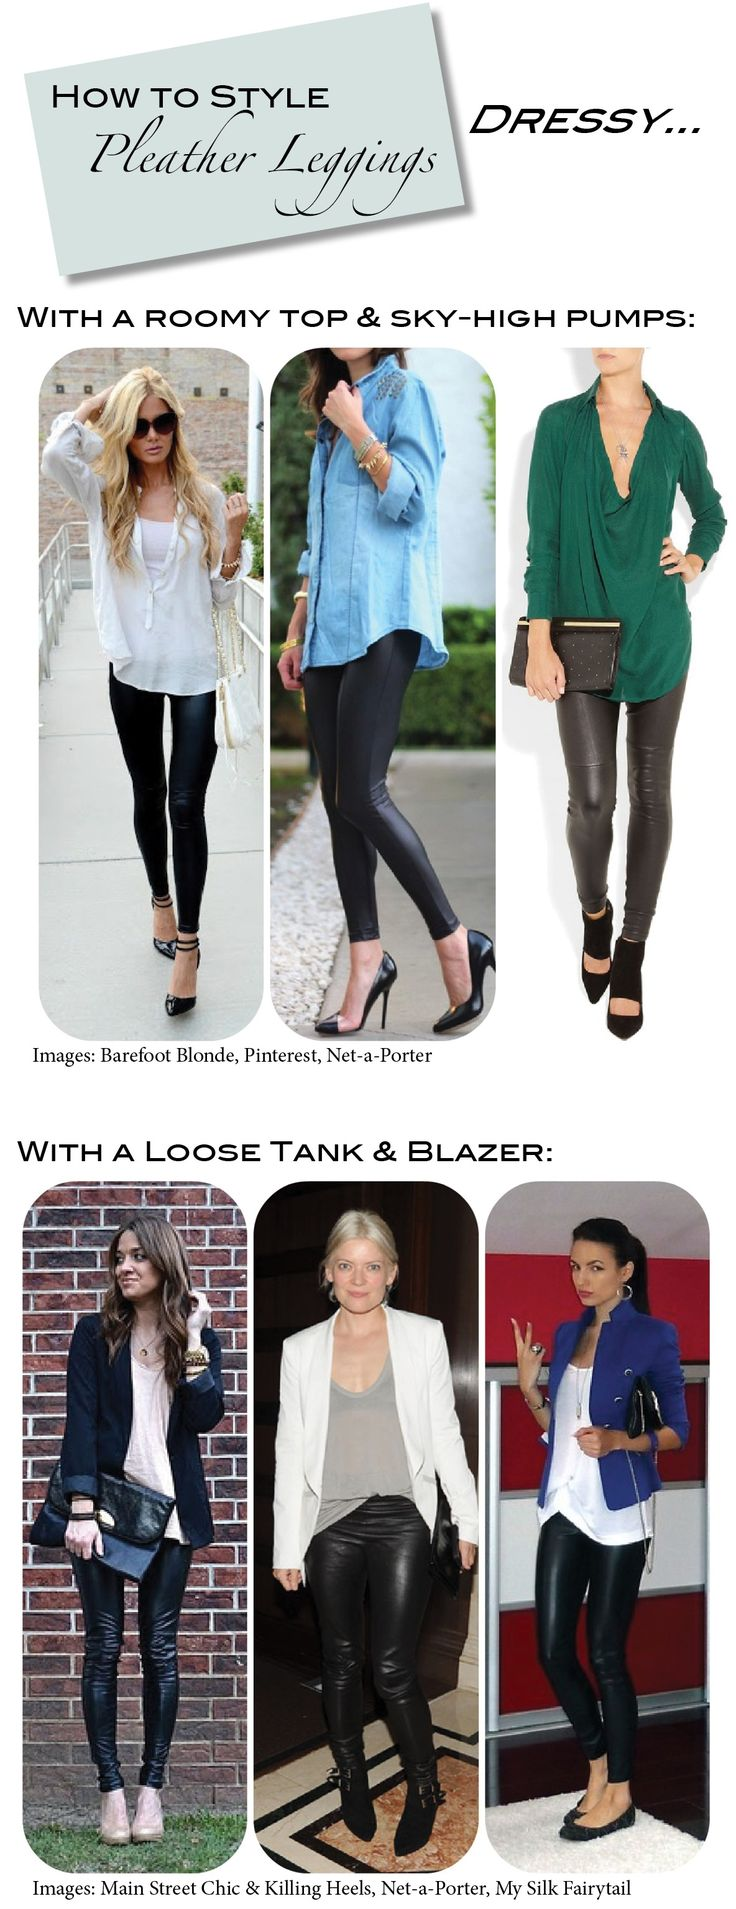 Click thorough for lots of ideas for how to wear pleather or leather leggings... This idea: To dress them up - style them with loose tops, blazers and heels or flats.